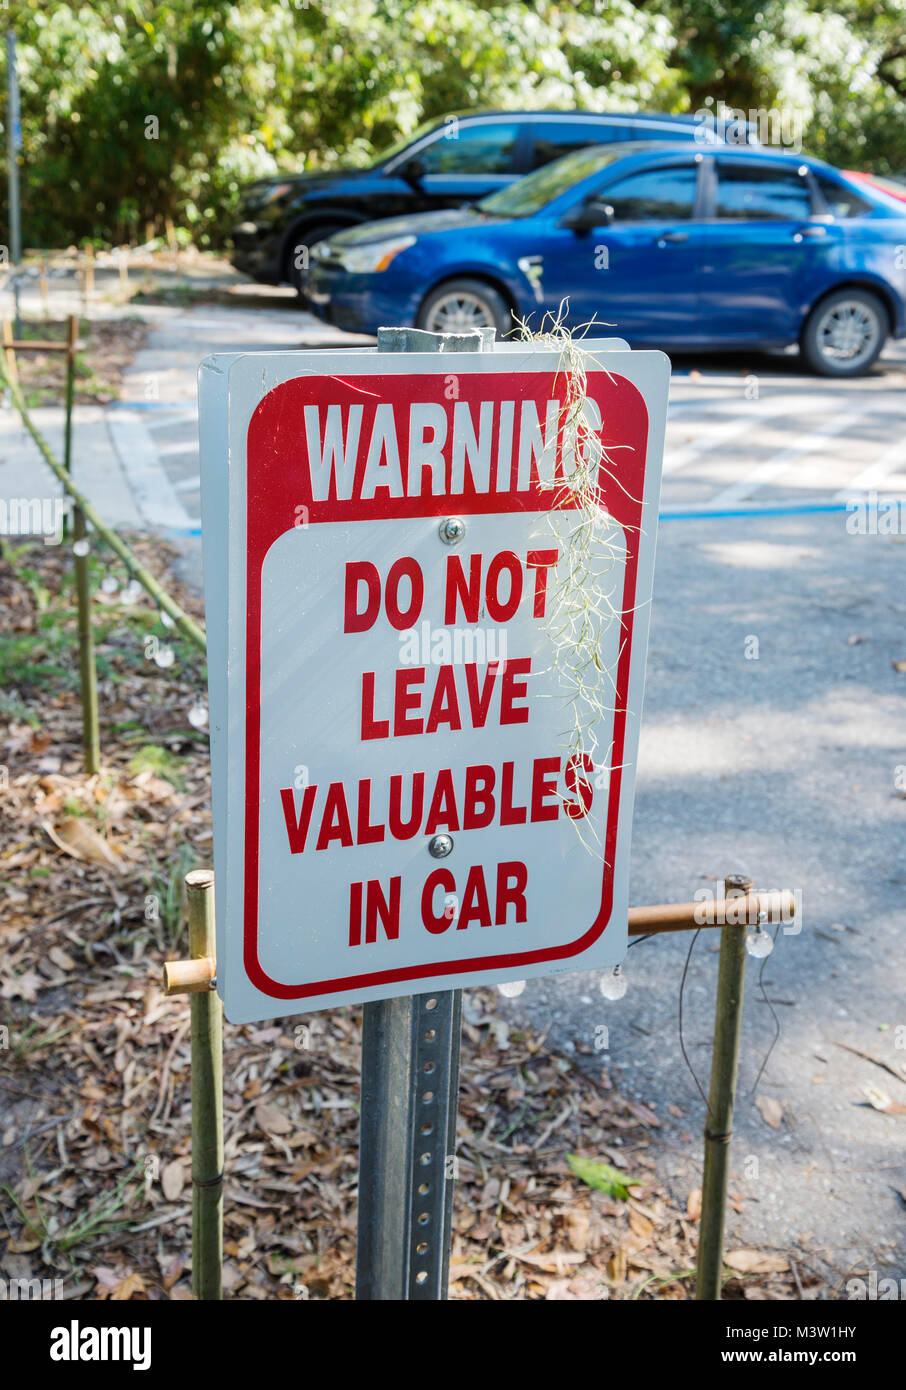 Sign warning against leaving valuables in a car or vehicle because of theft. - Stock Image